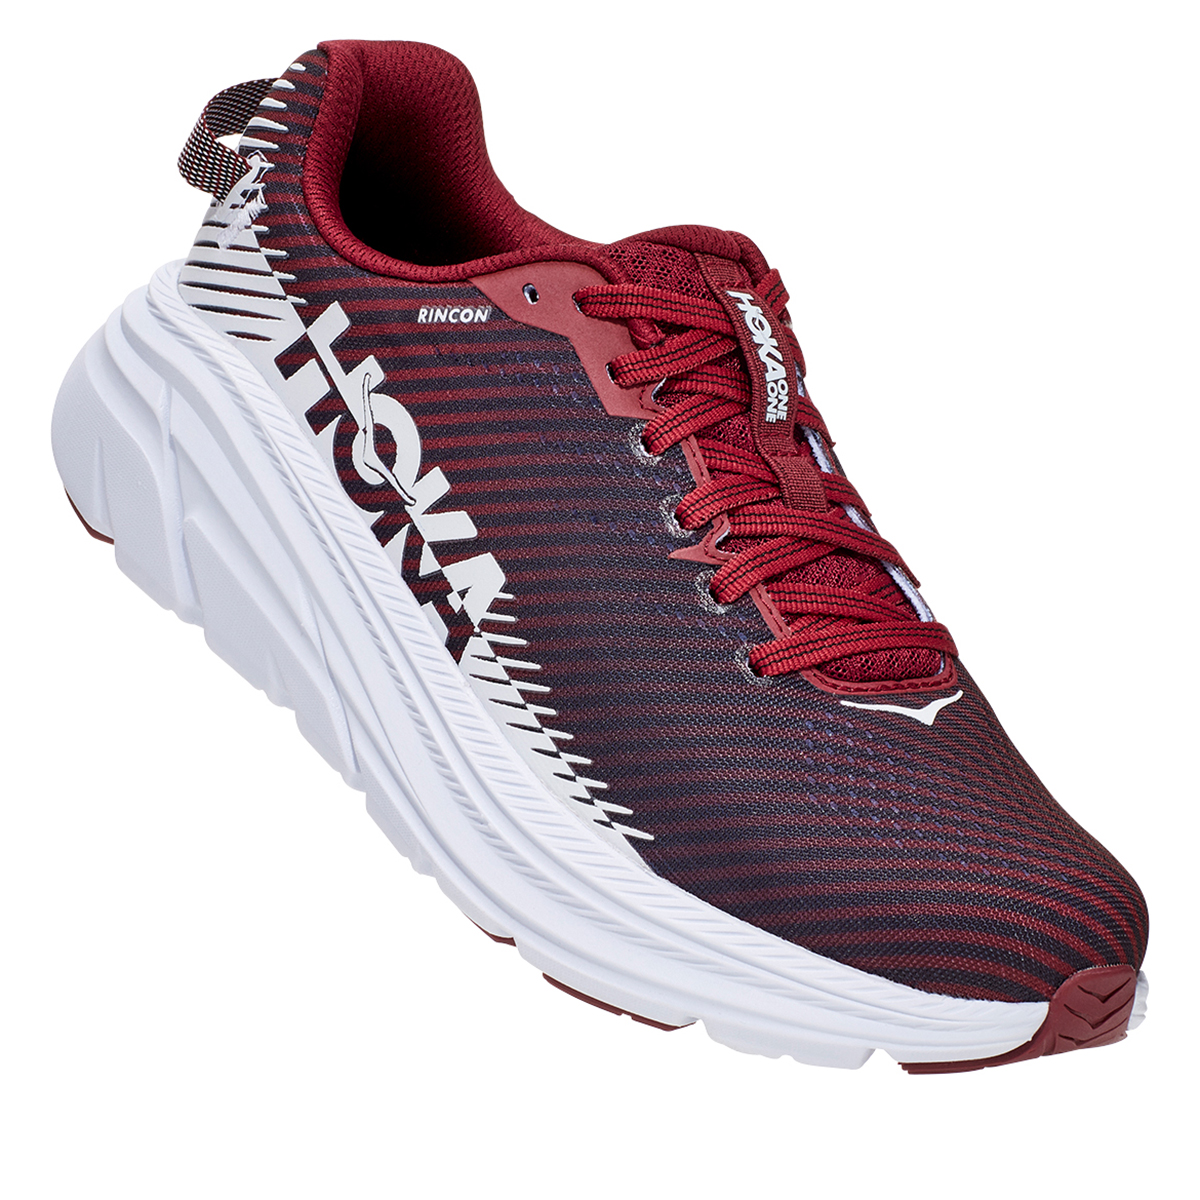 Women's Hoka One One Rincon 2 Running Shoe - Color: Cordovan/White - Size: 5 - Width: Regular, Cordovan/White, large, image 4